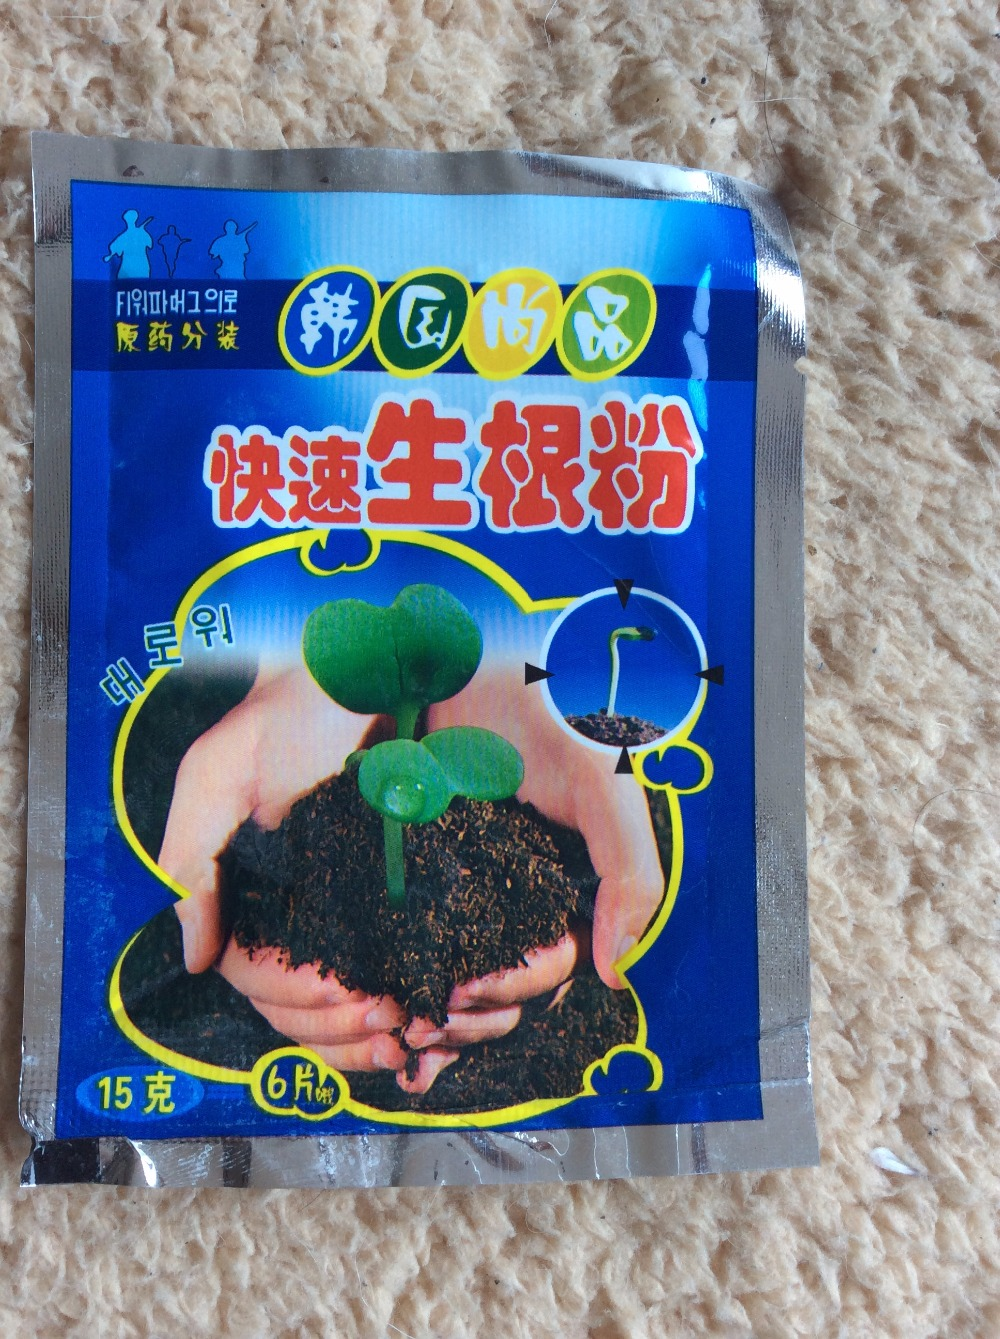 Transplanting seedlings of plants necessary, rapid rooting, rooting agents improve the survival rate - 1 bag